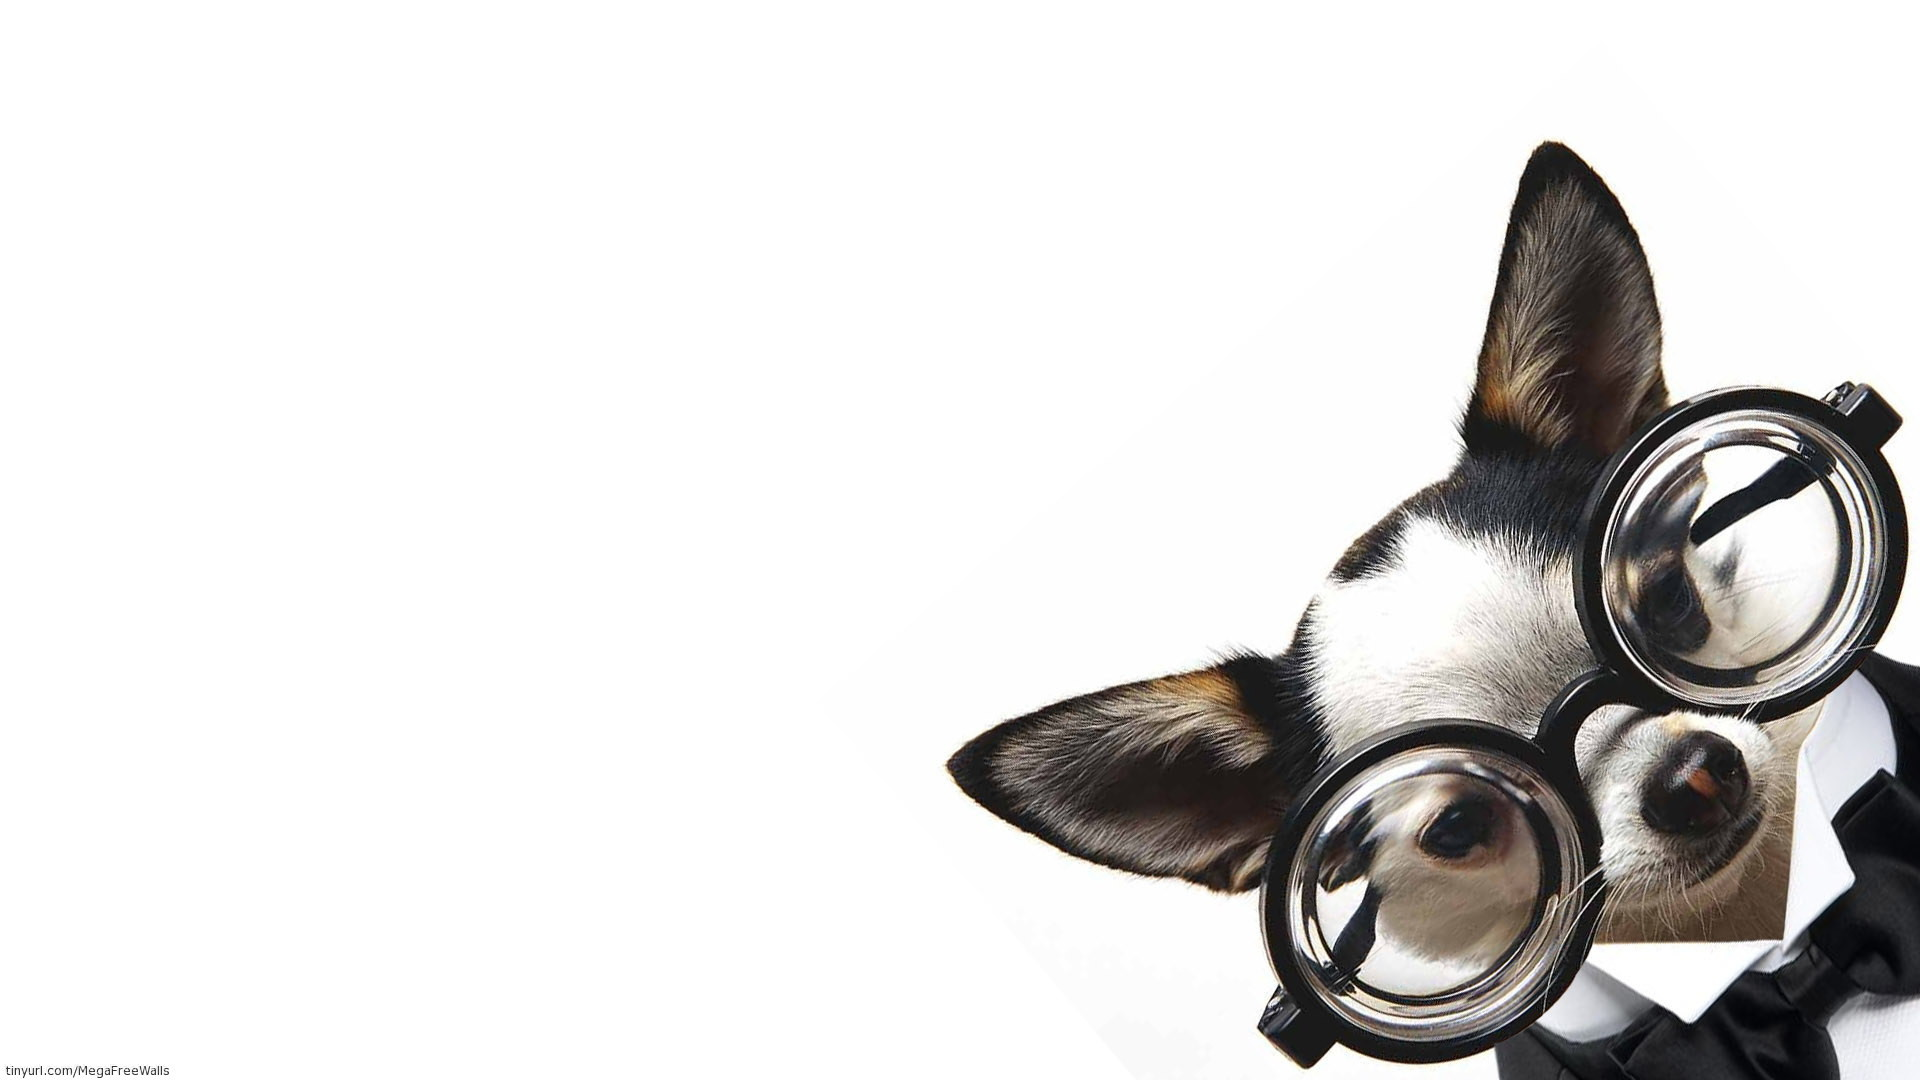 Res: 1920x1080, Animal - Cute Dog Puppy Wallpaper